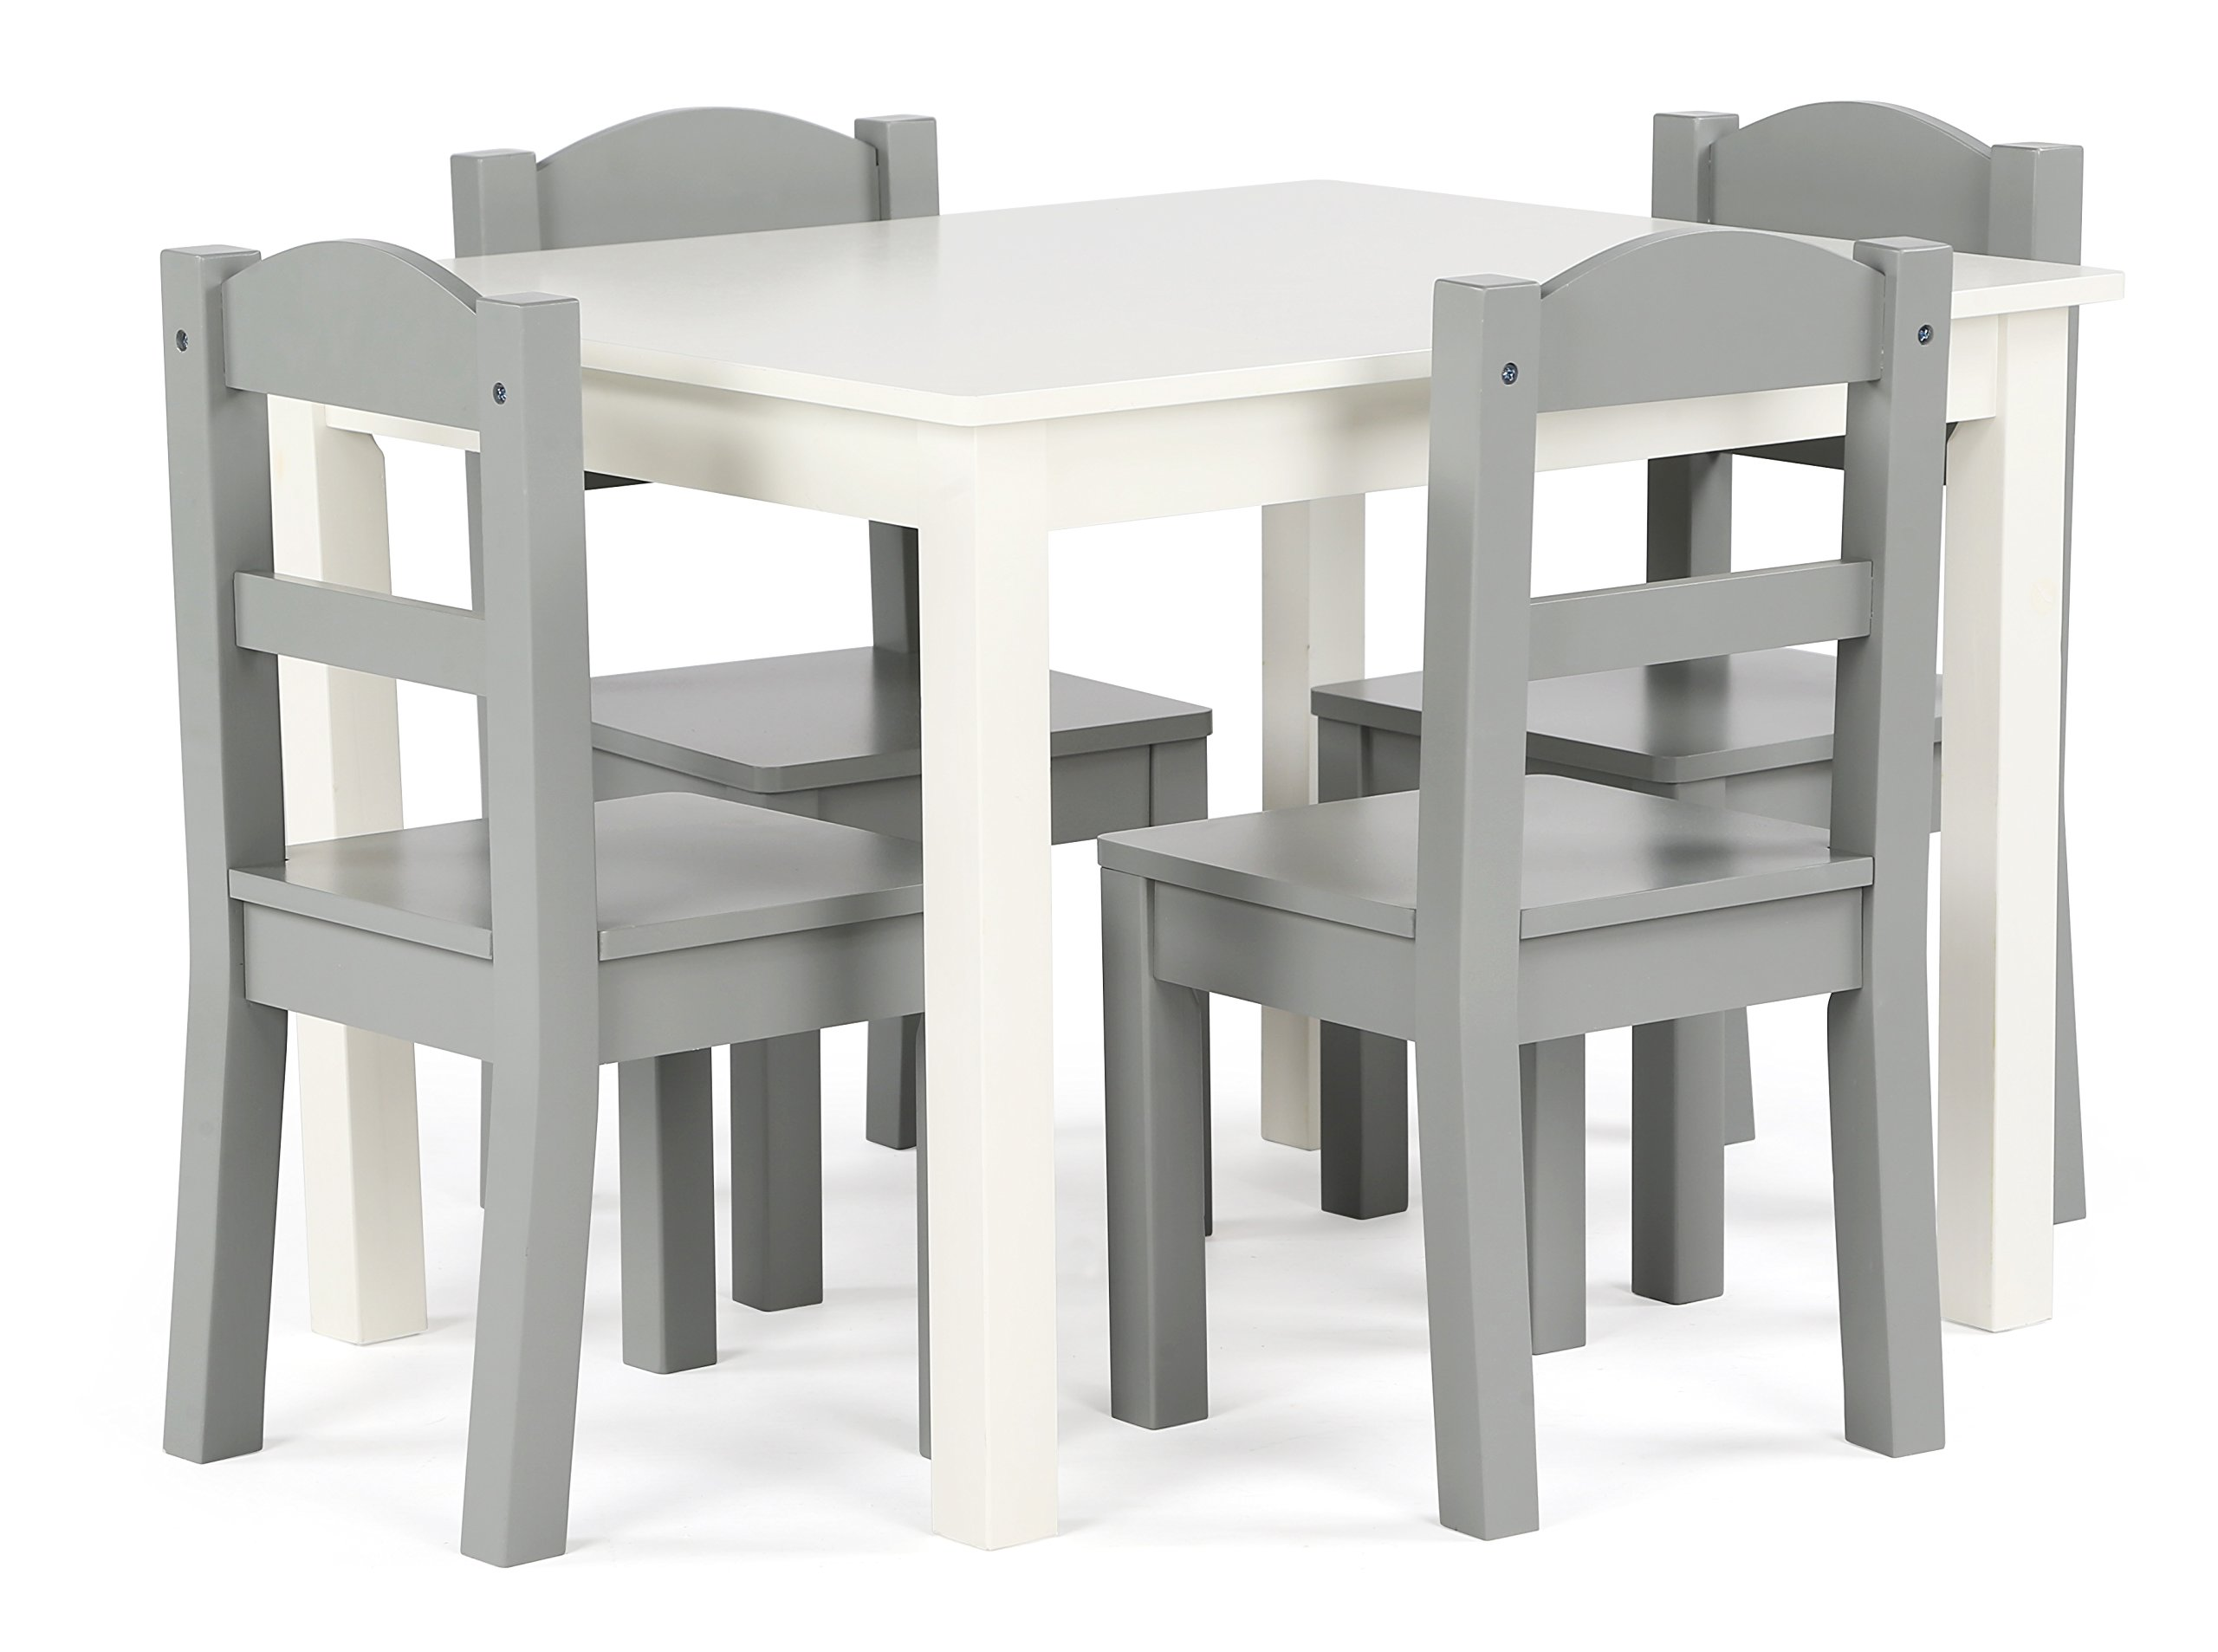 Tot Tutors TC534 Springfield Collection Kids Wood Table & 4 Chair Set, White/Grey by Tot Tutors